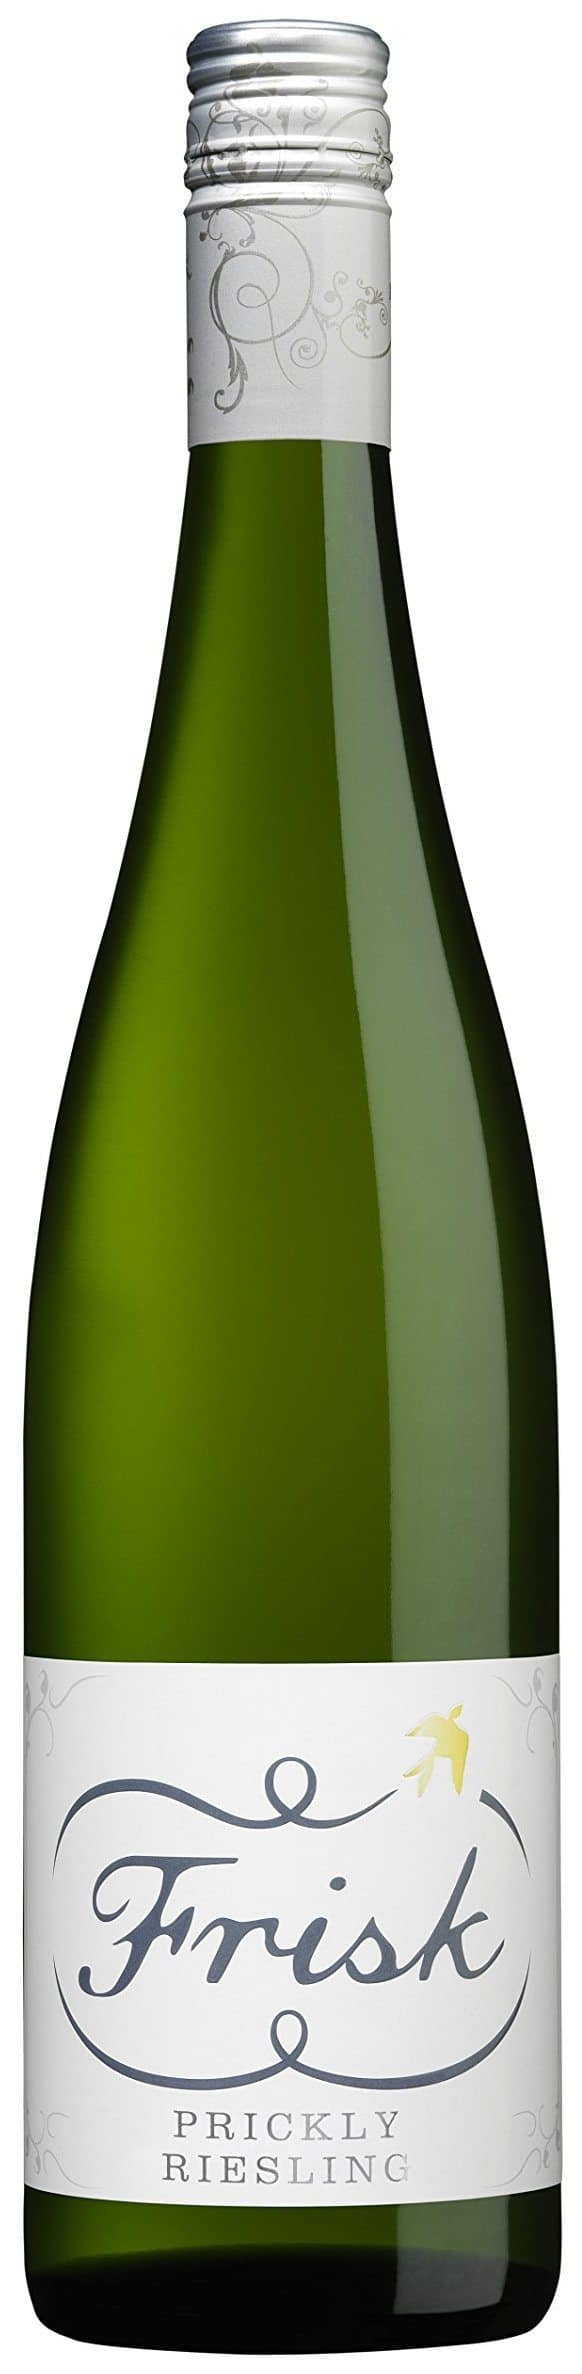 2014 Frisk Prickly Riesling Victoria Wine